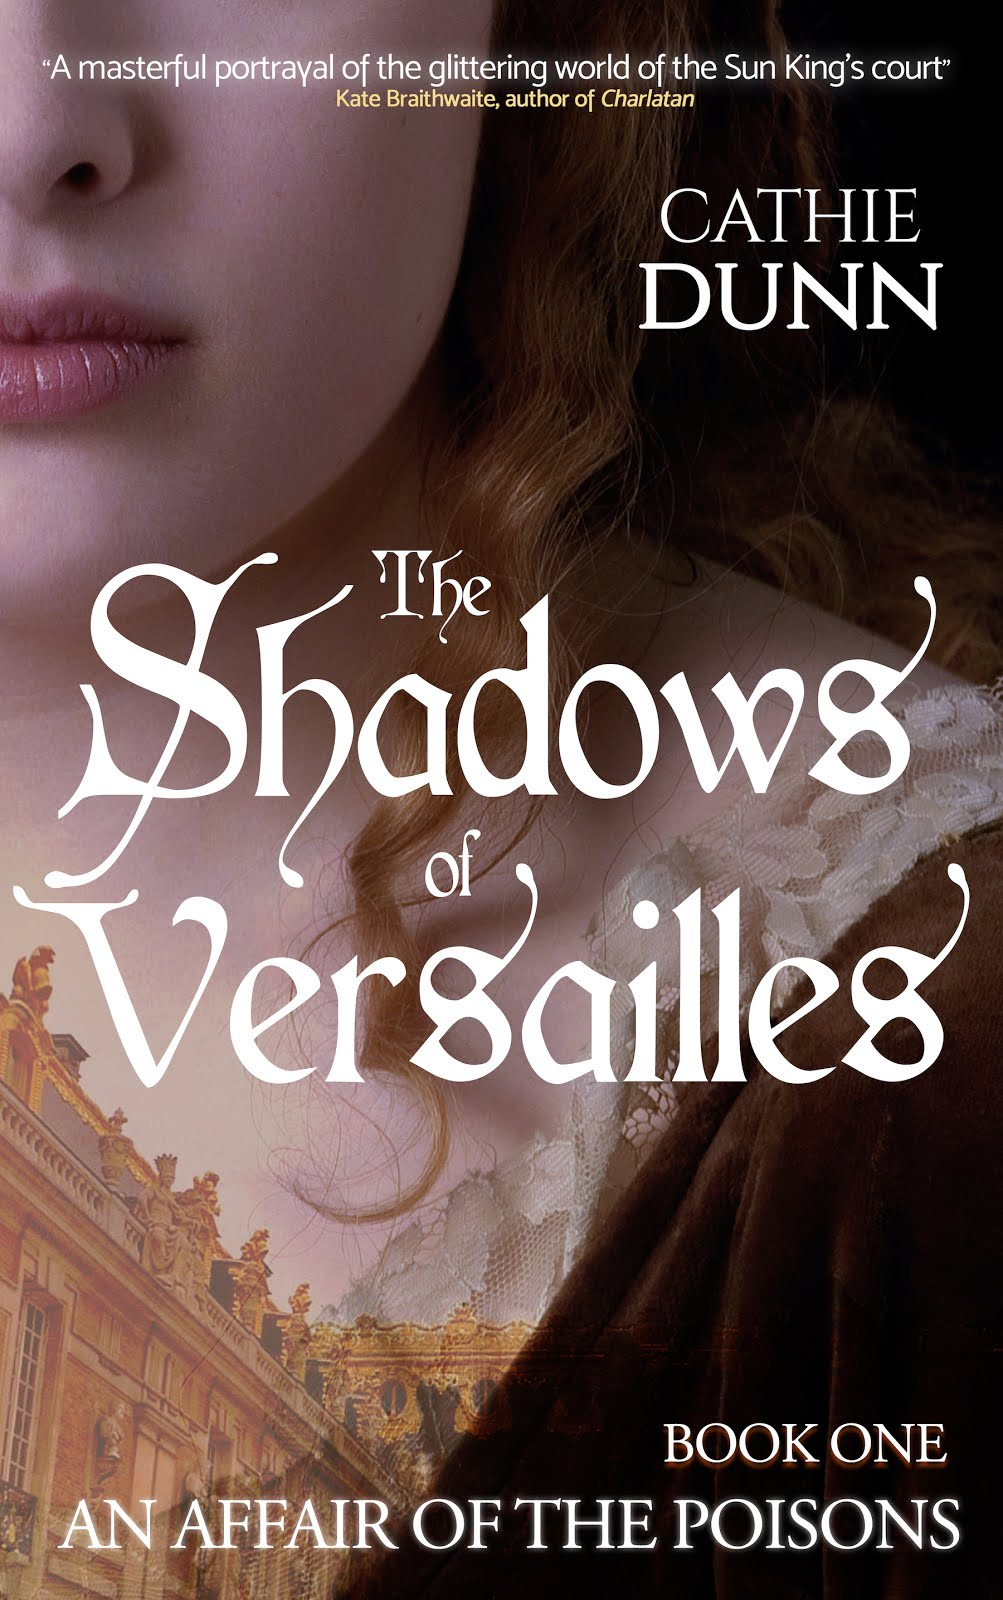 The Shadows of Versailles – now available!